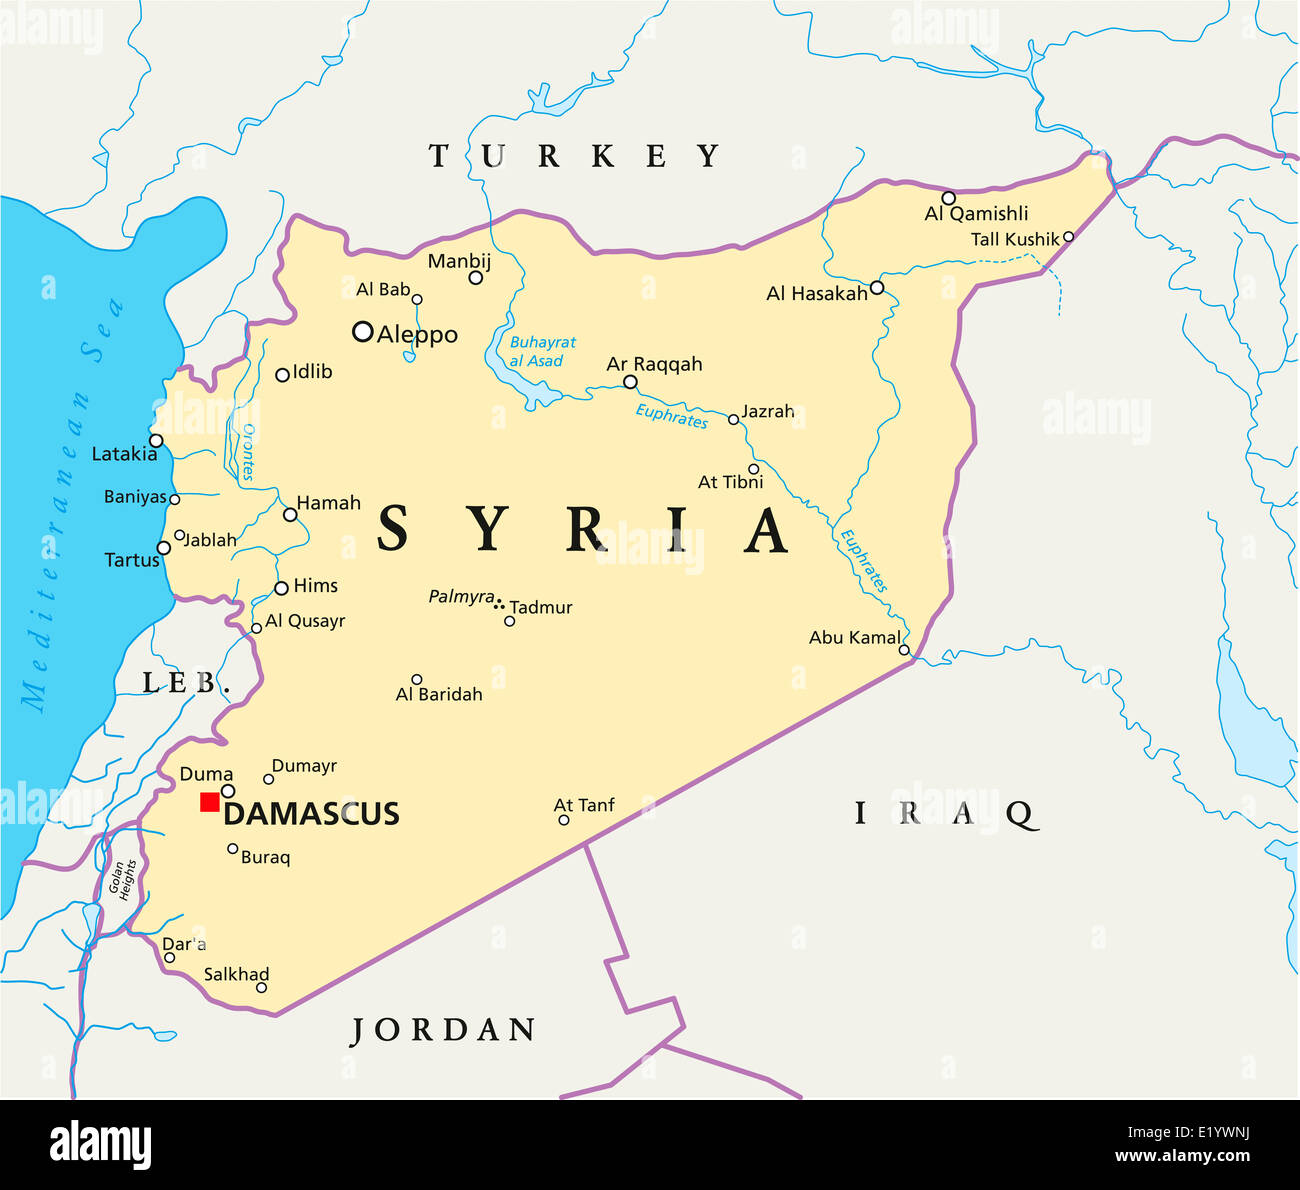 Syria political map political map of syria with capital damascus syria political map political map of syria with capital damascus national borders most gumiabroncs Images